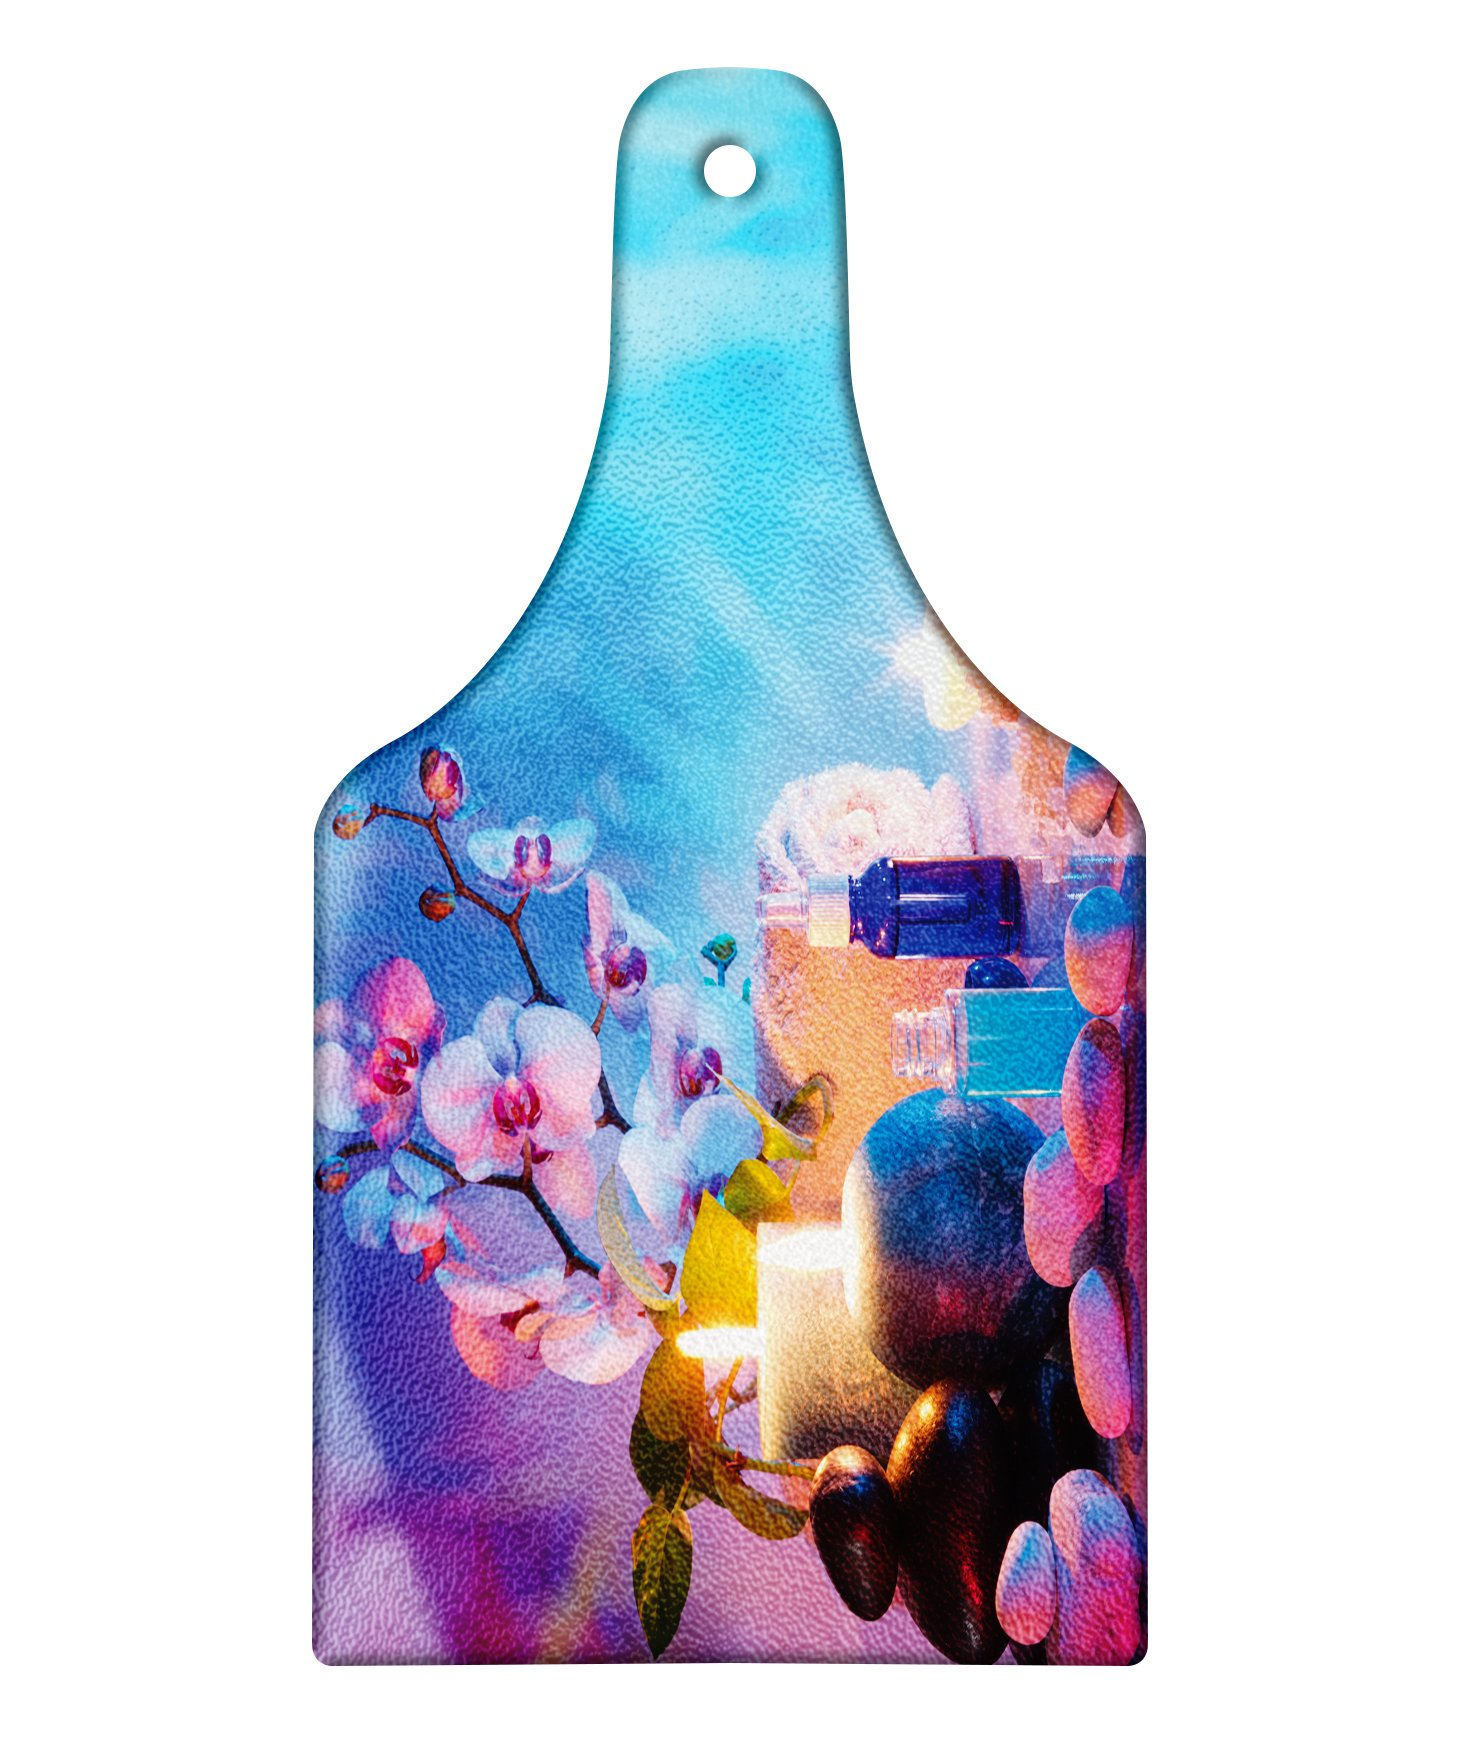 Lunarable Spa Cutting Board, Preparation for Bath Massage in Garden with Stones Flowers Essential Oils Aromatherapy, Decorative Tempered Glass Cutting and Serving Board, Wine Bottle Shape, Pink Blue